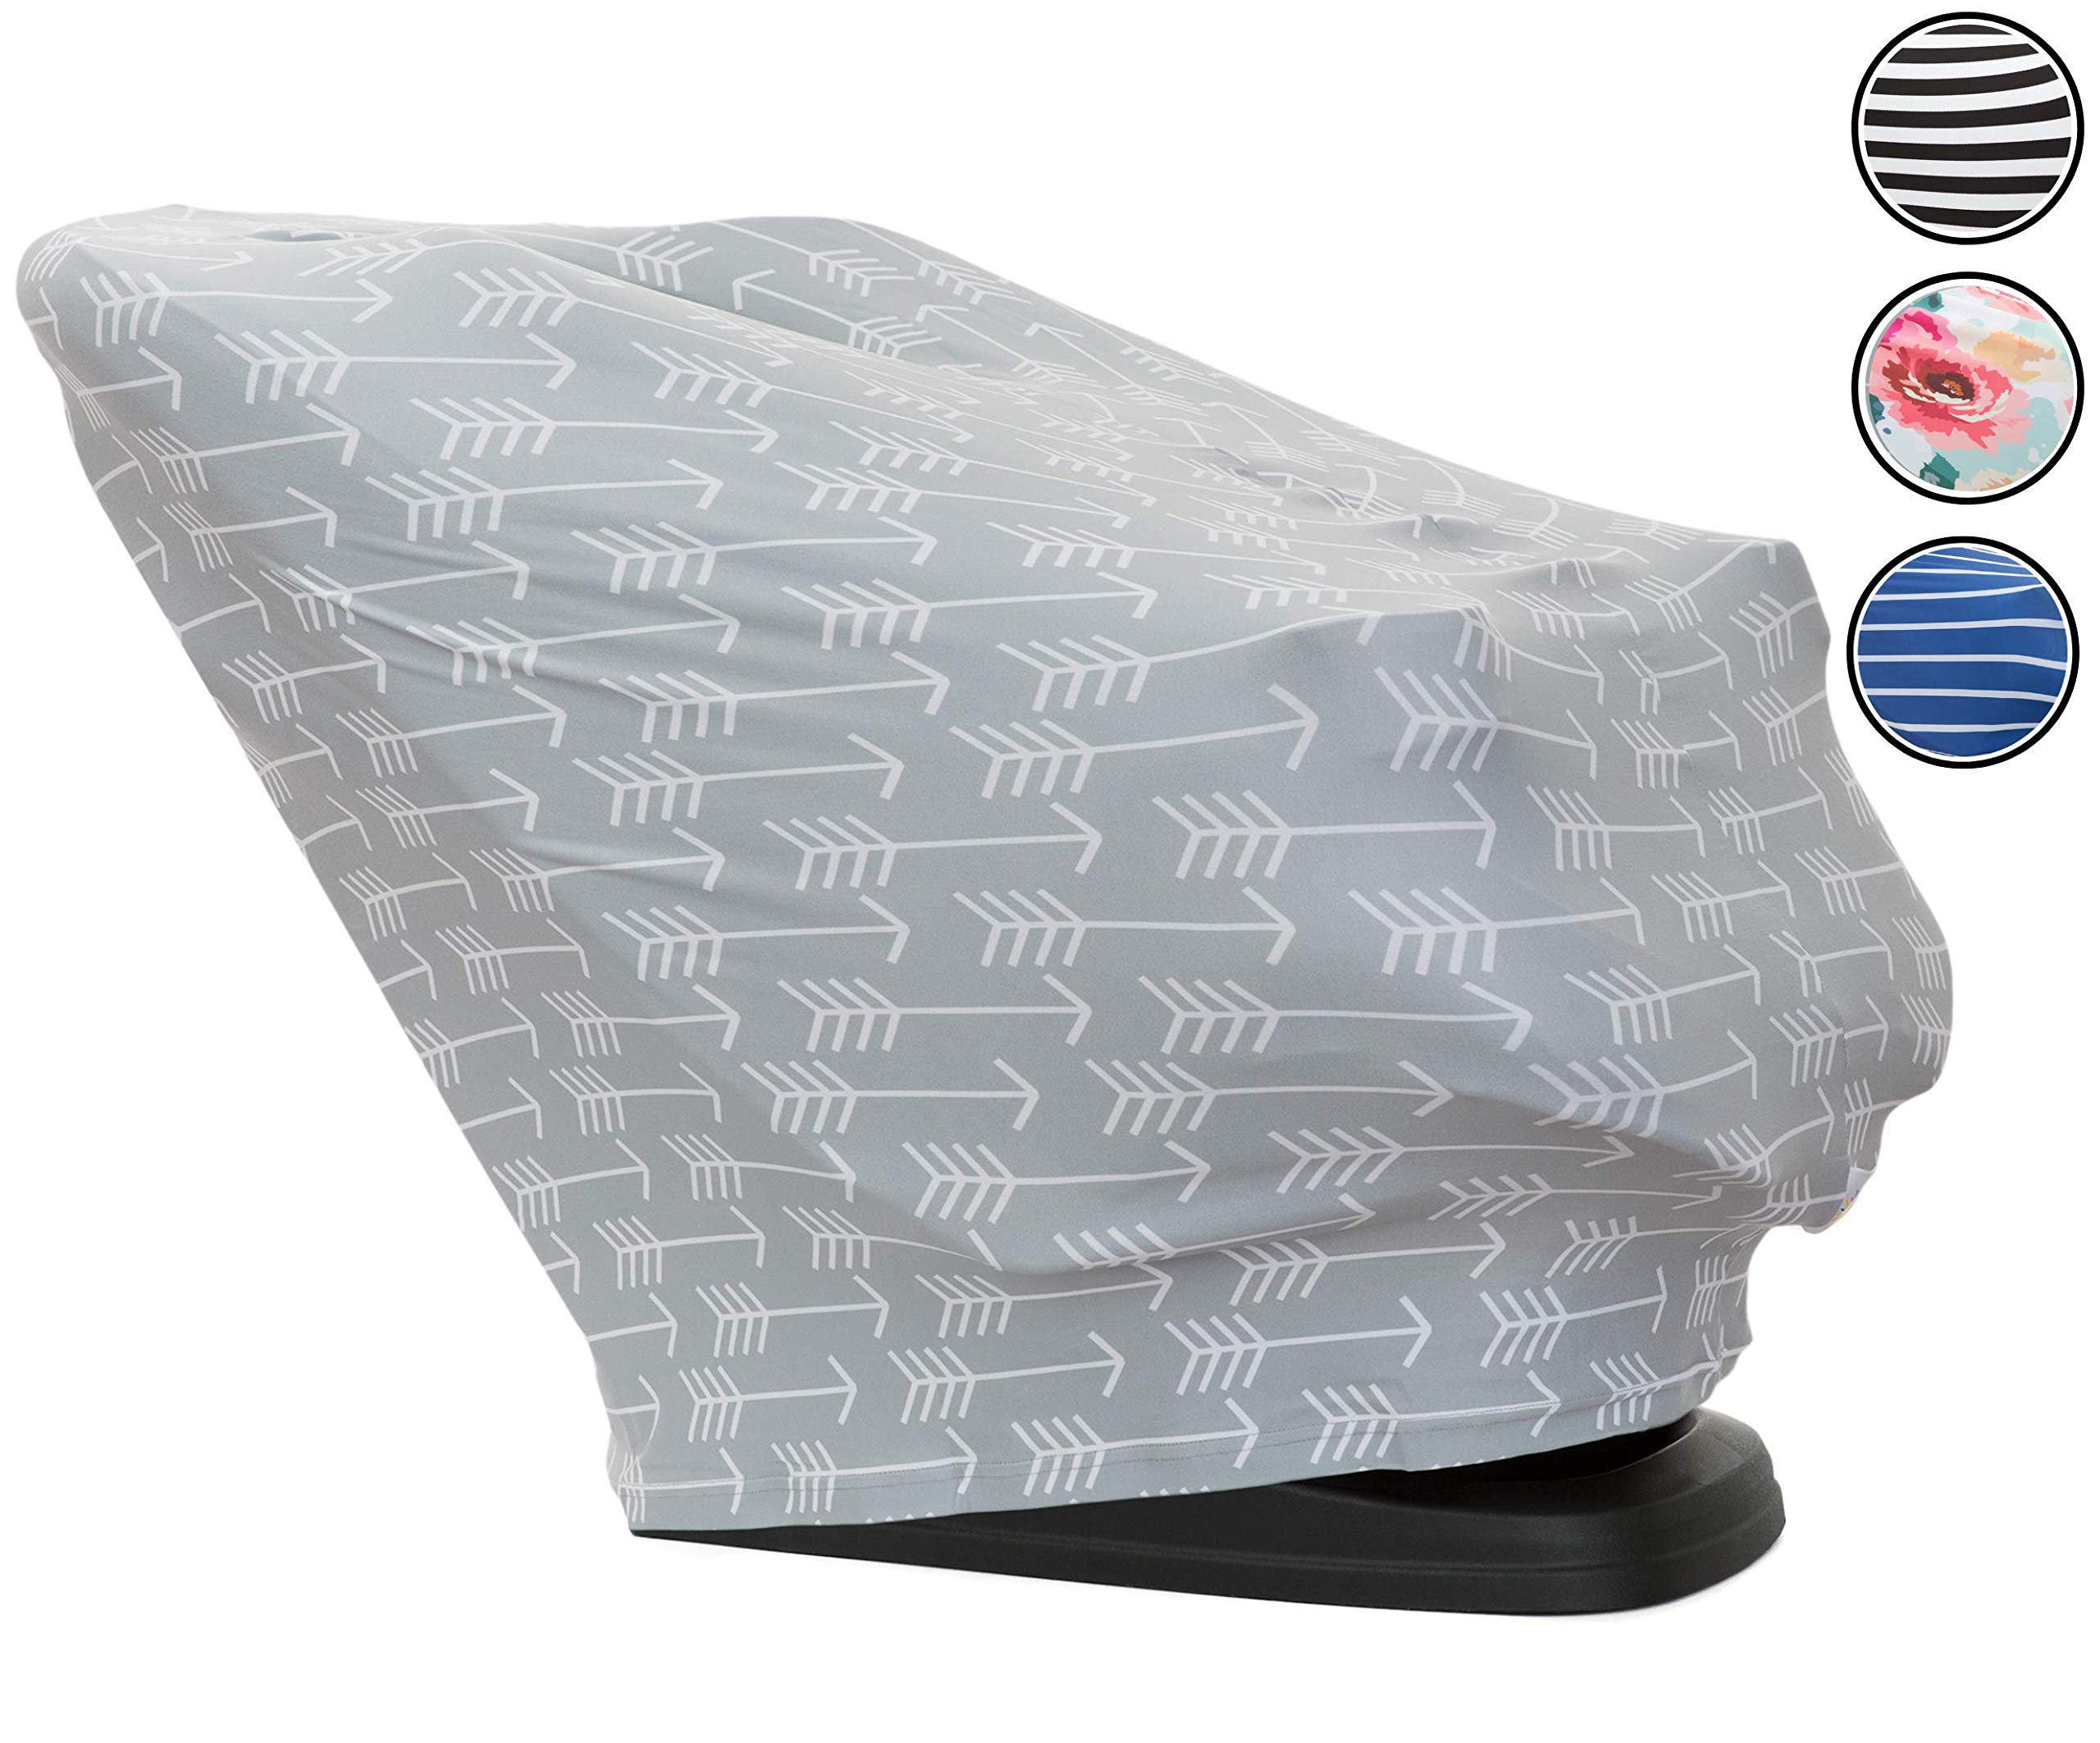 Baby Shine Premium Nursing Cover - Extra Soft, 6 in 1 Multi-Use Breastfeeding Cover for Baby Car Seat, Stroller, Scarf, and Shopping Cart (Grey & White Arrows)